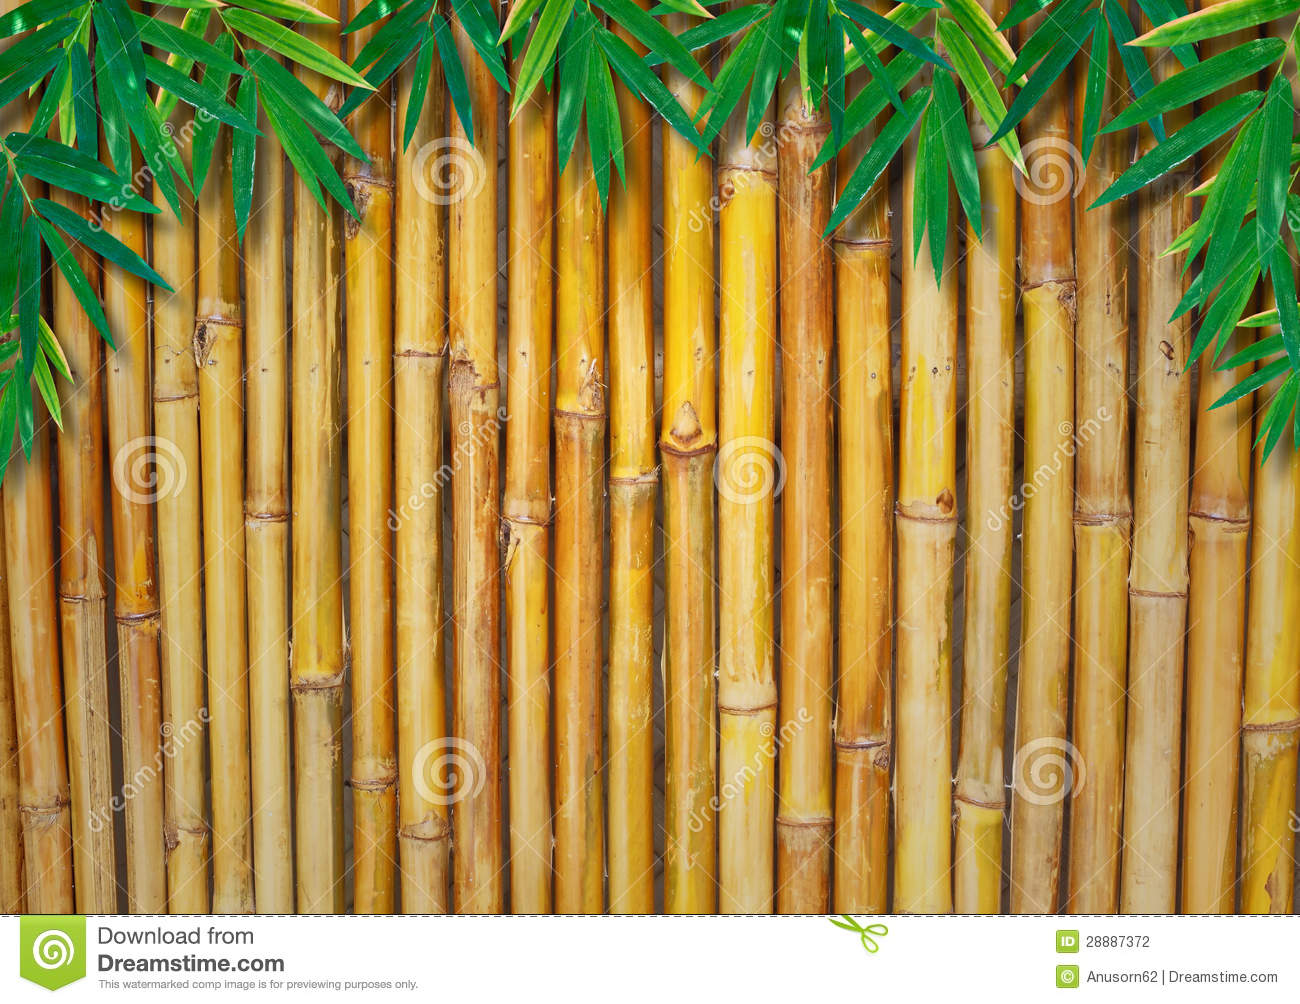 Background Of A Bamboo Fence With Bamboo Leaves Stock